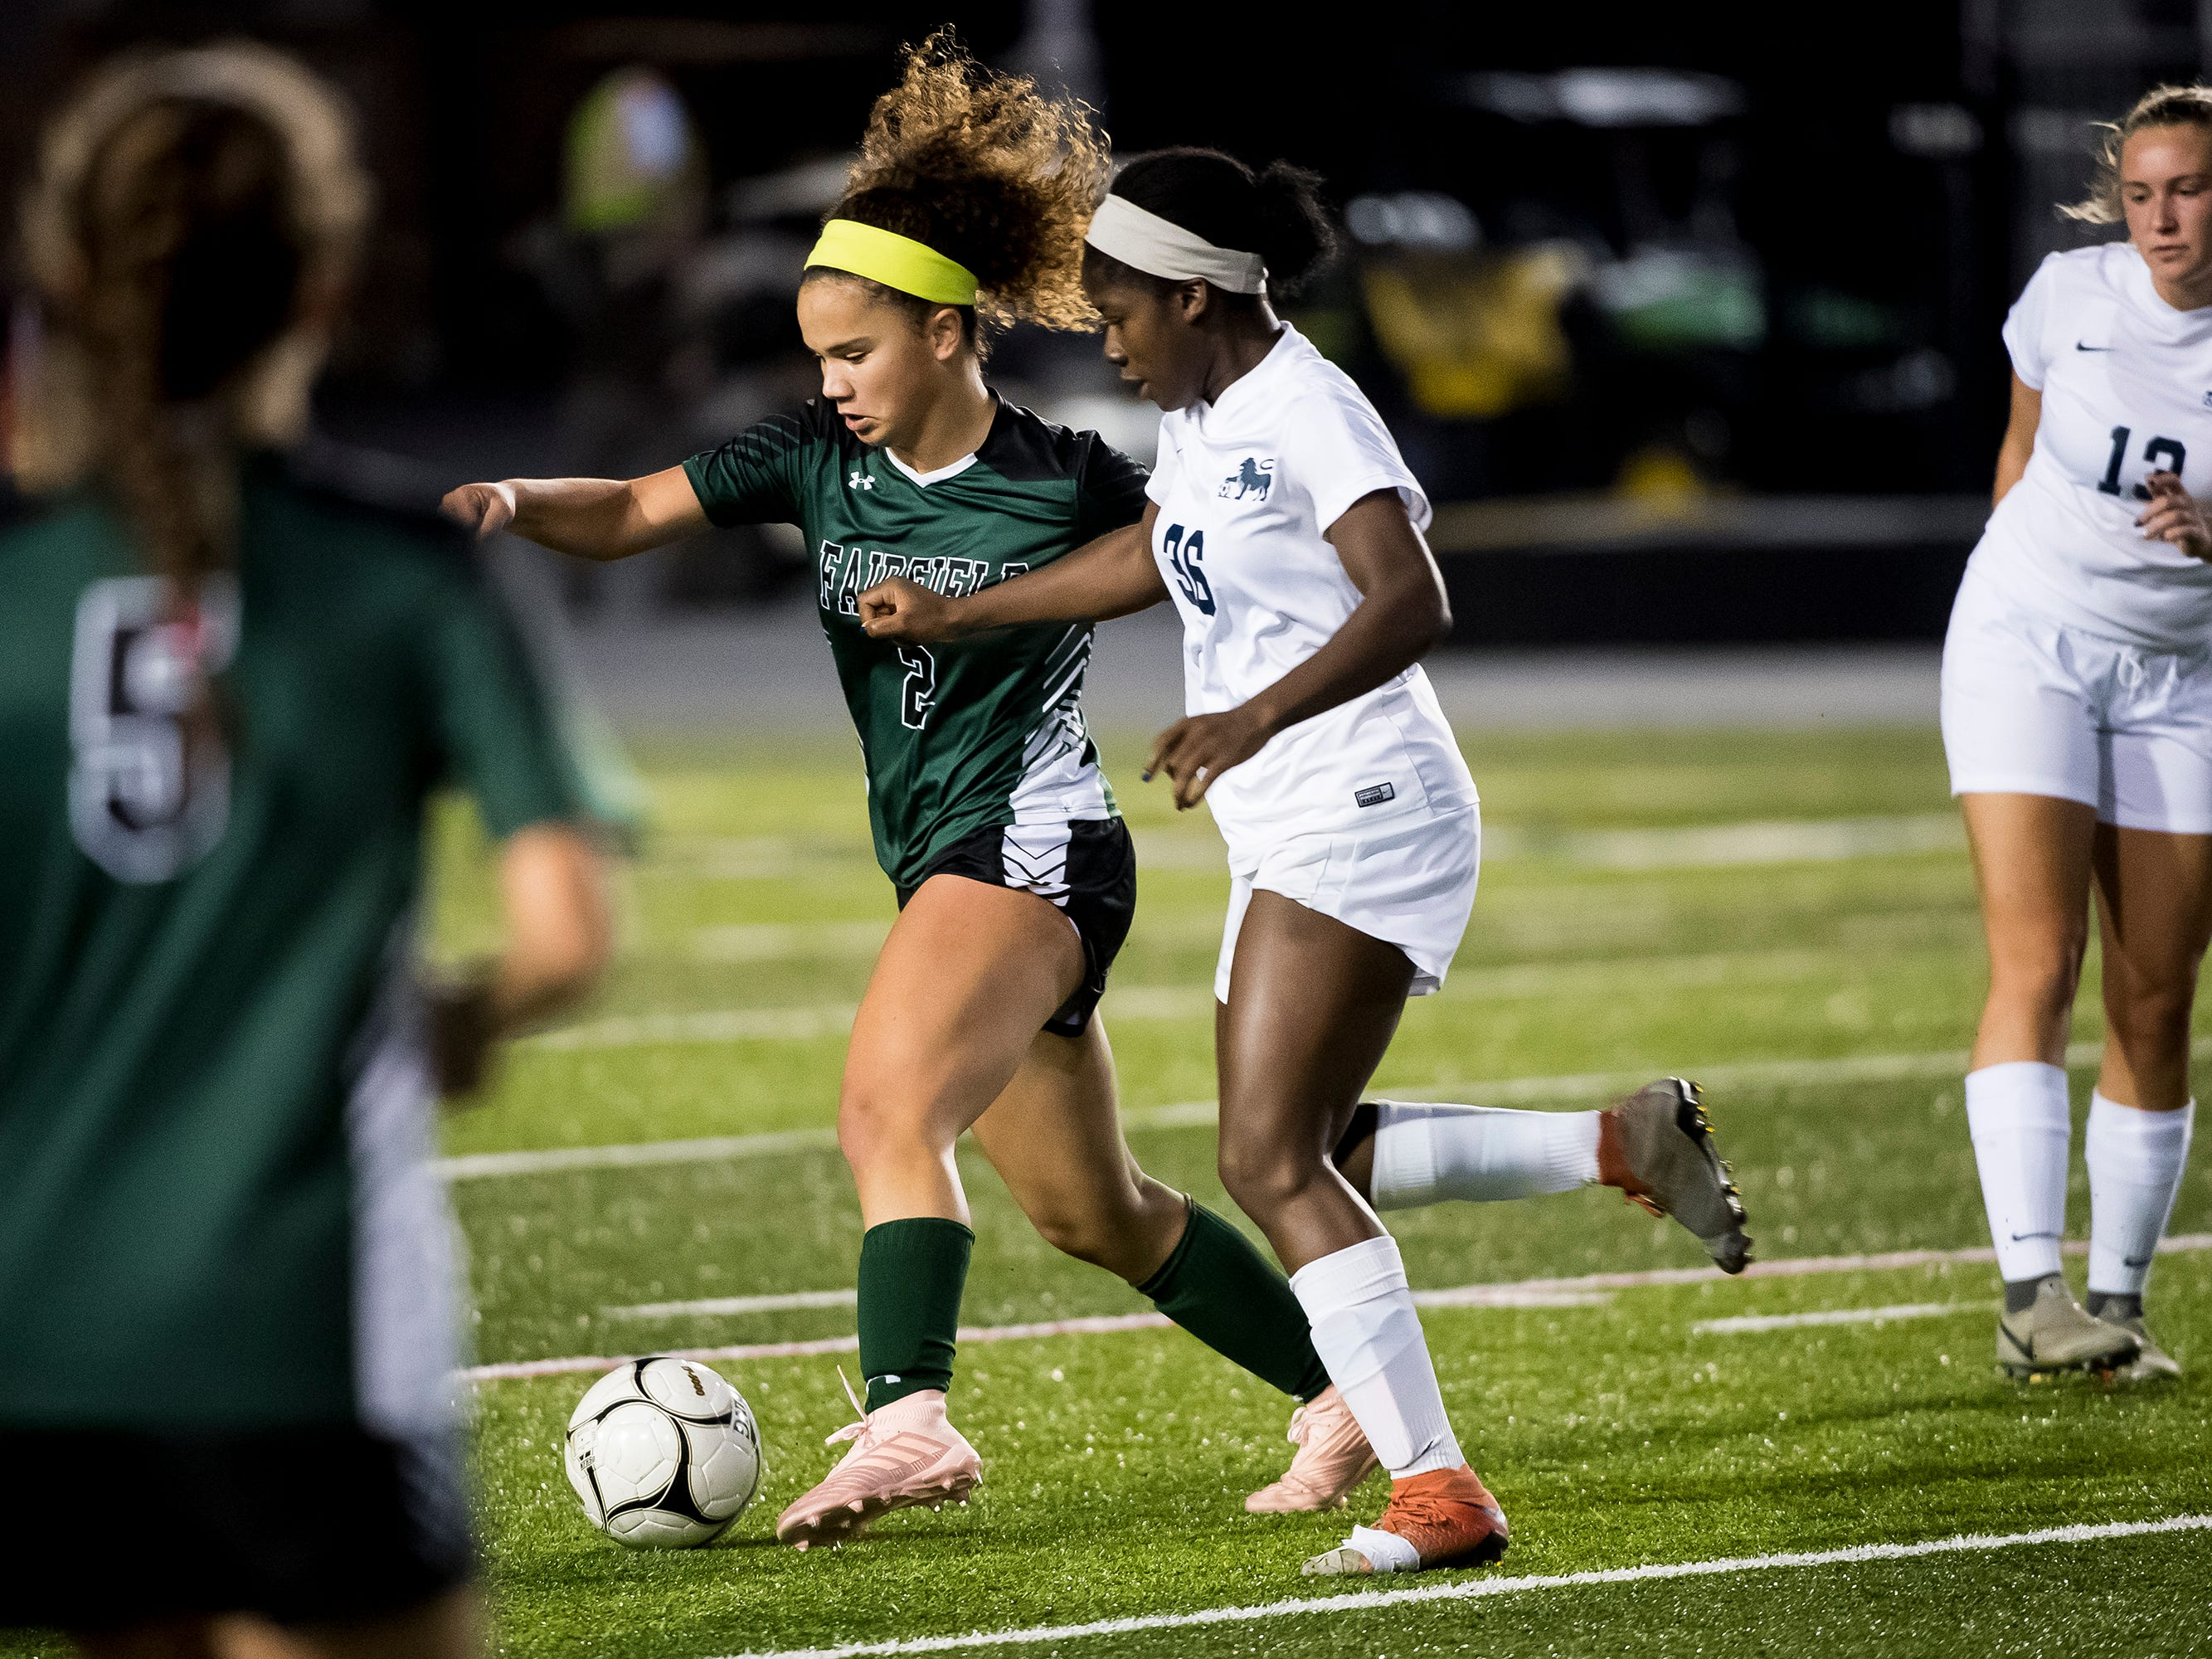 Fairfield's Annabel Anderson (2) controls the ball against Camp Hill's Shelly Williams (36) during the PIAA District III Class A championship game at Hershey Park Stadium on Wednesday, October 31, 2018. The Knights fell in overtime 1-0.